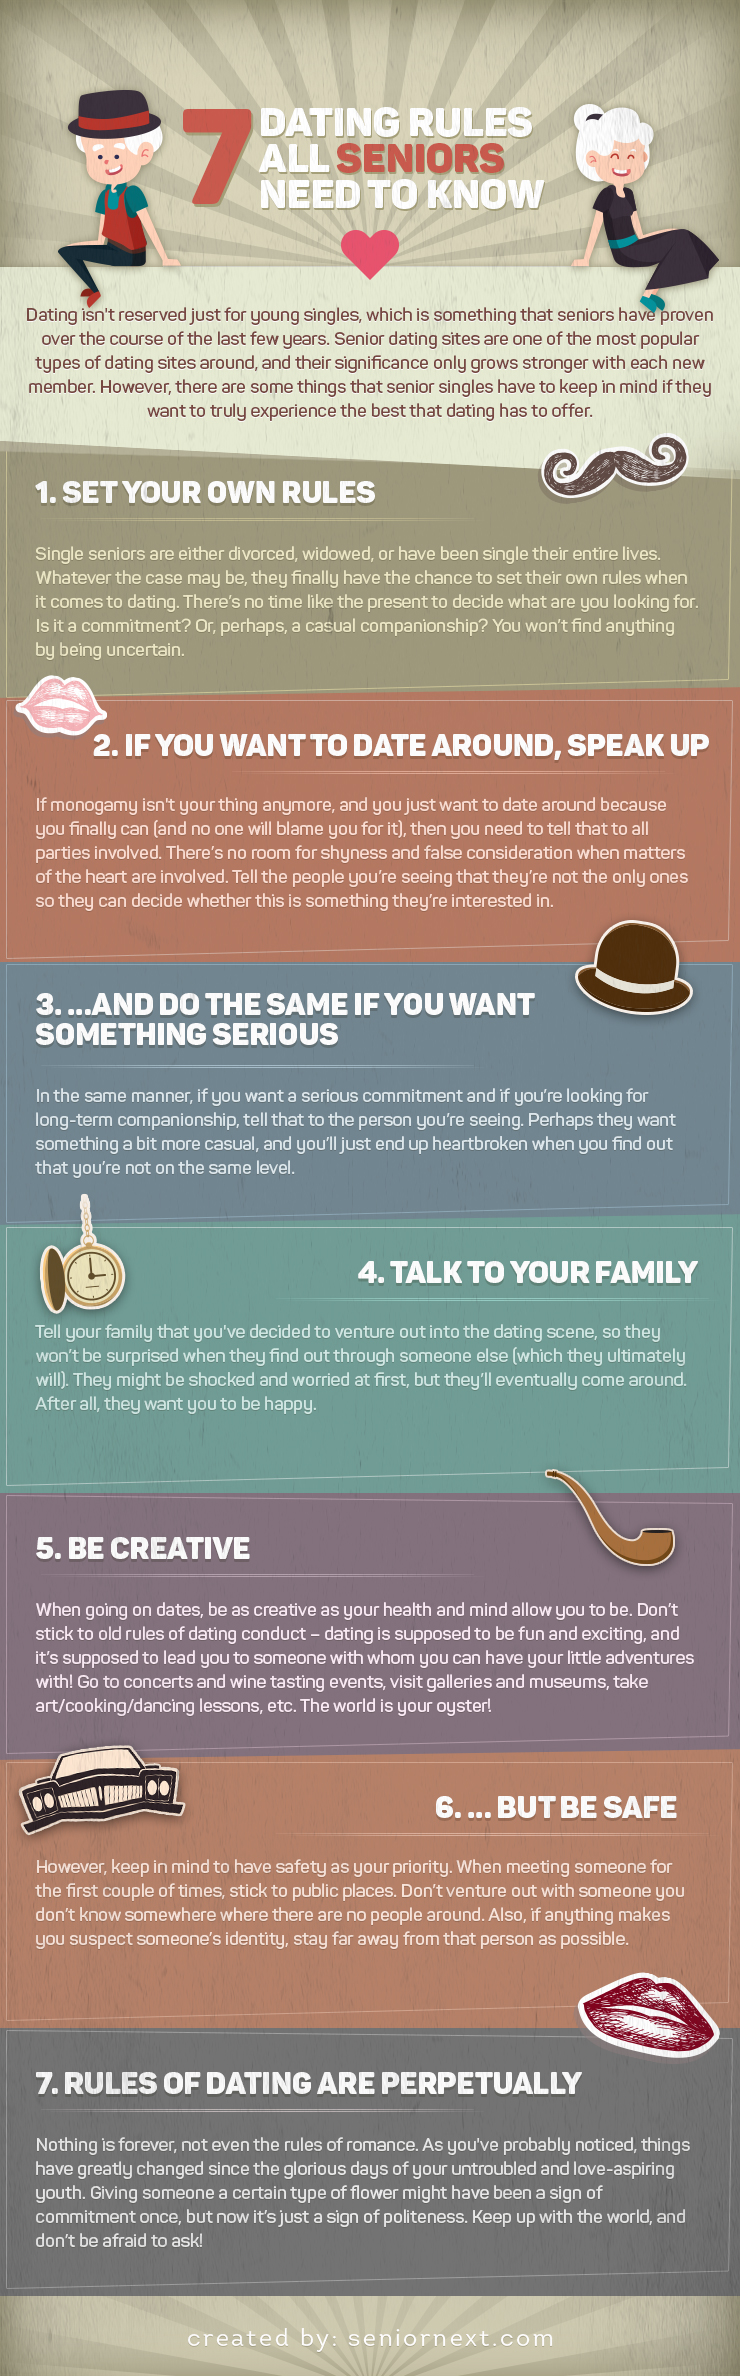 7 Dating Rules All Seniors Need to Know